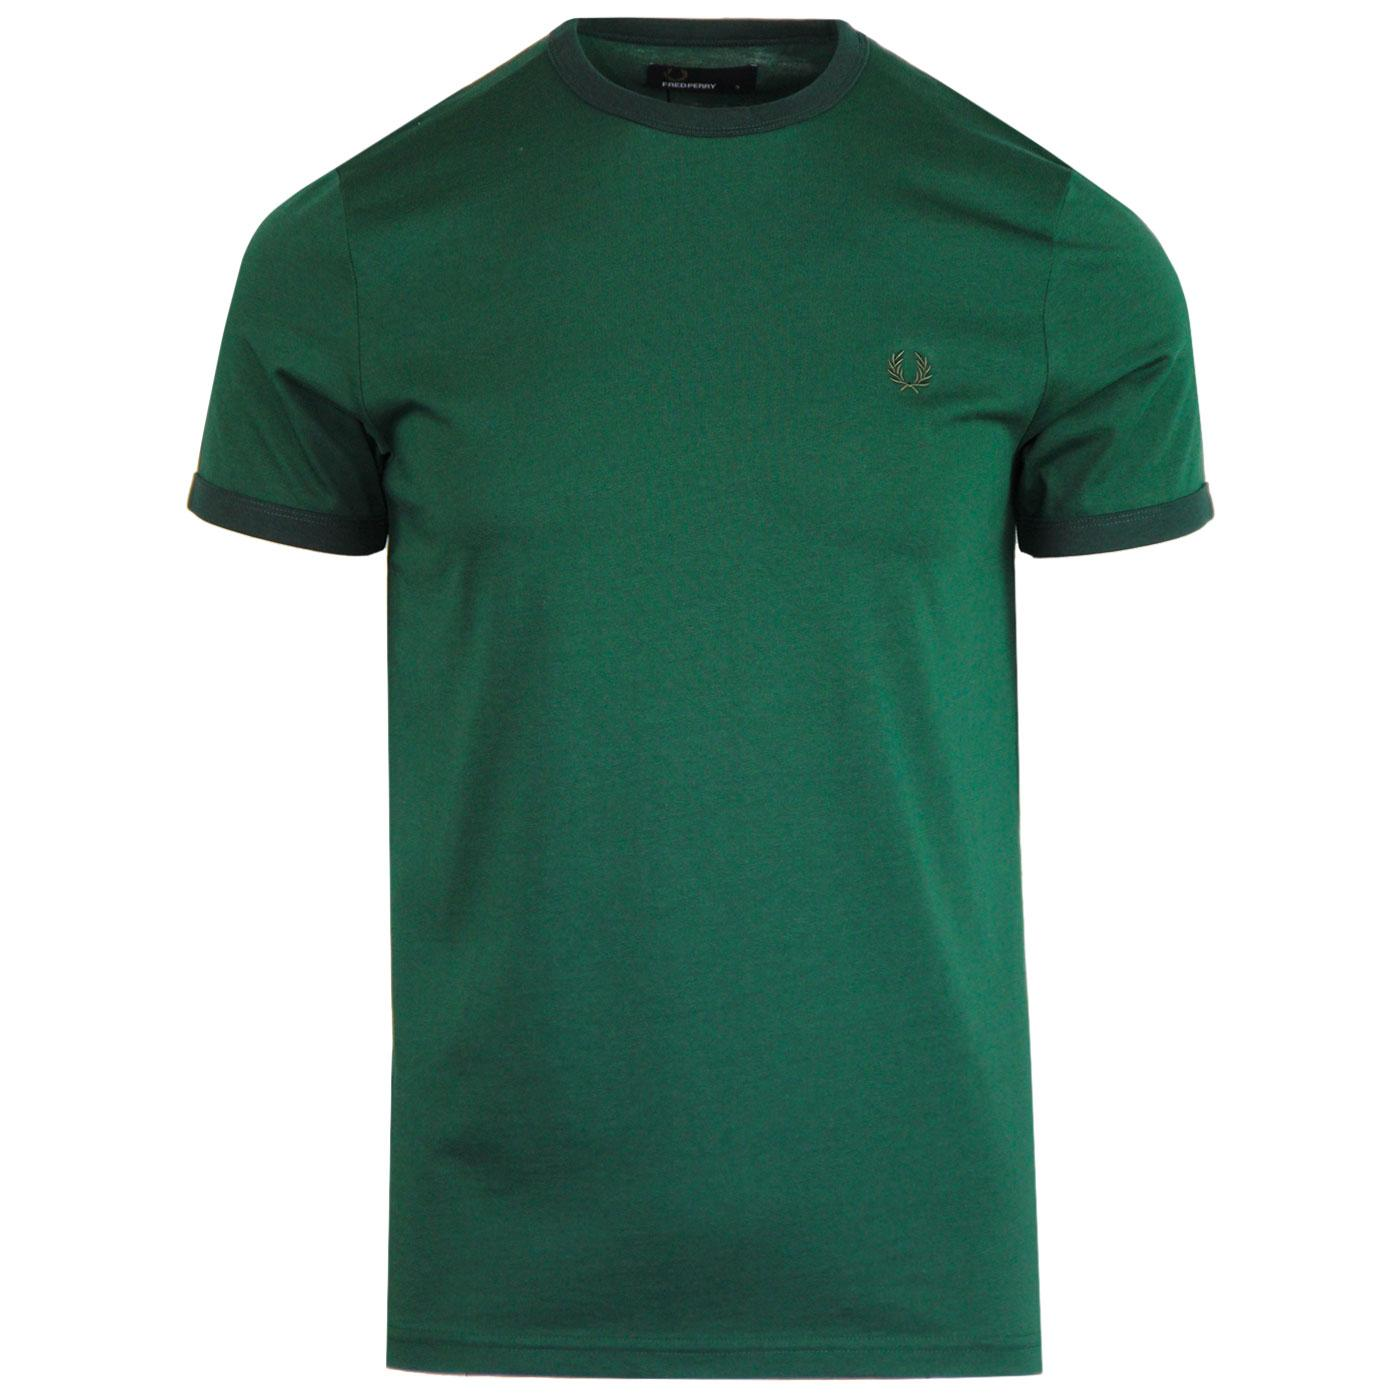 FRED PERRY Retro Mod Crew Neck Ringer T-shirt IVY